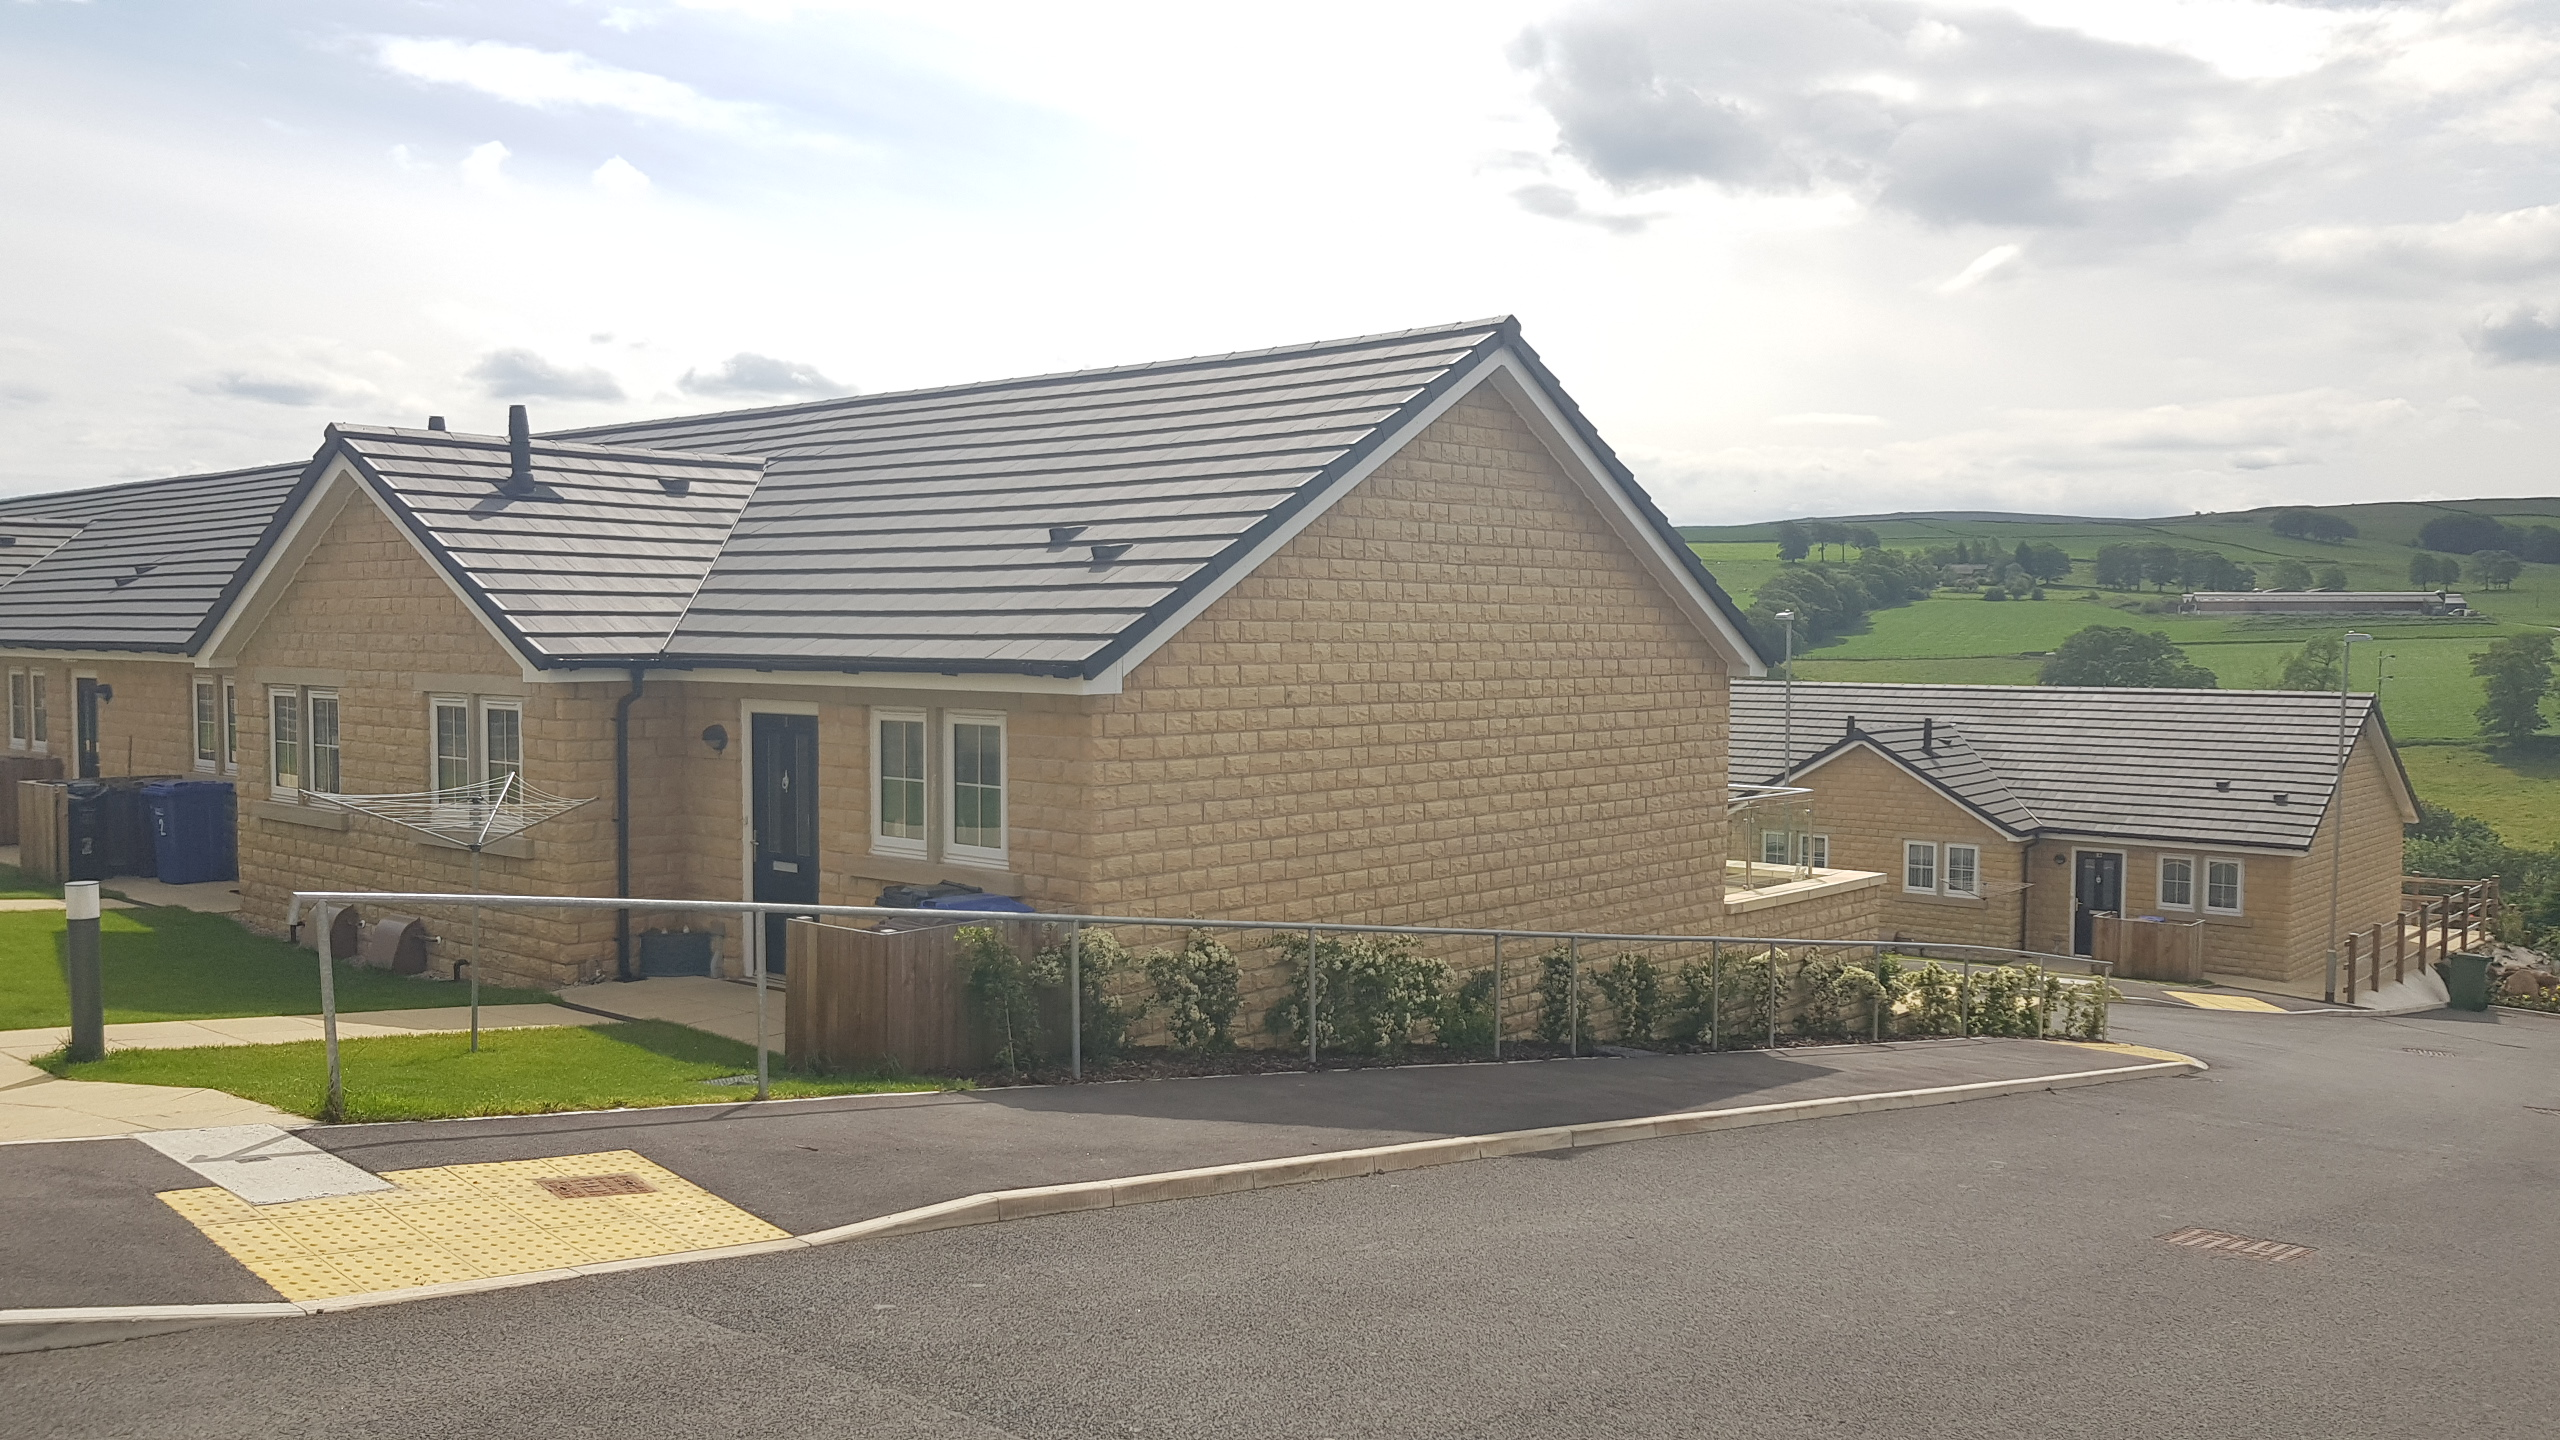 Millionaire's legacy leads to prestigious award for Colne housing development